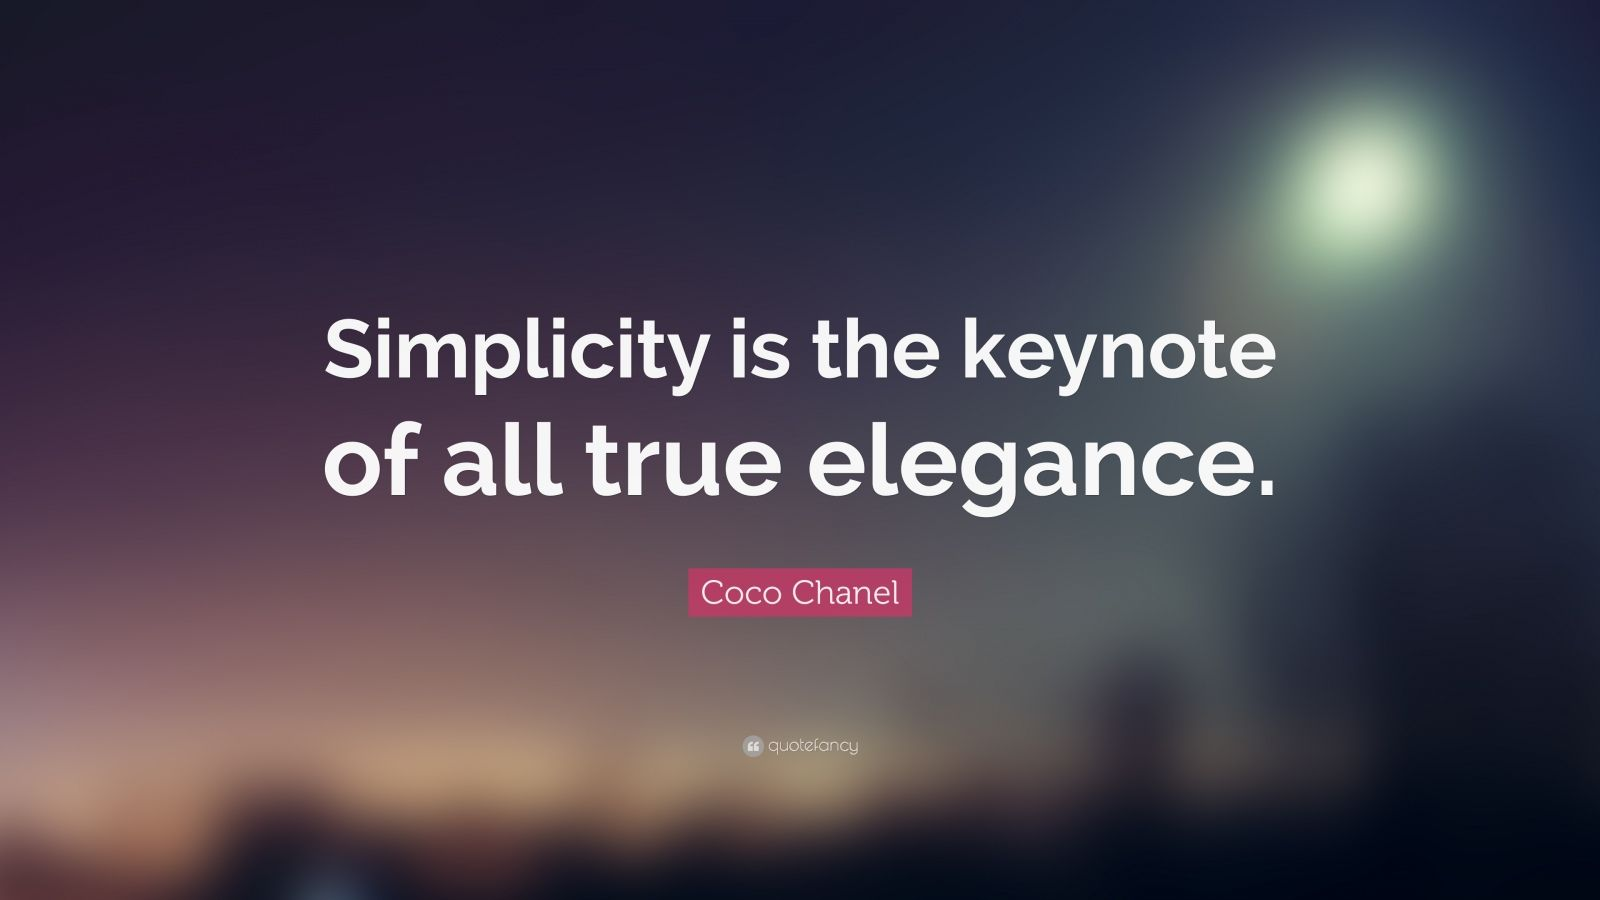 coco chanel quote �simplicity is the keynote of all true